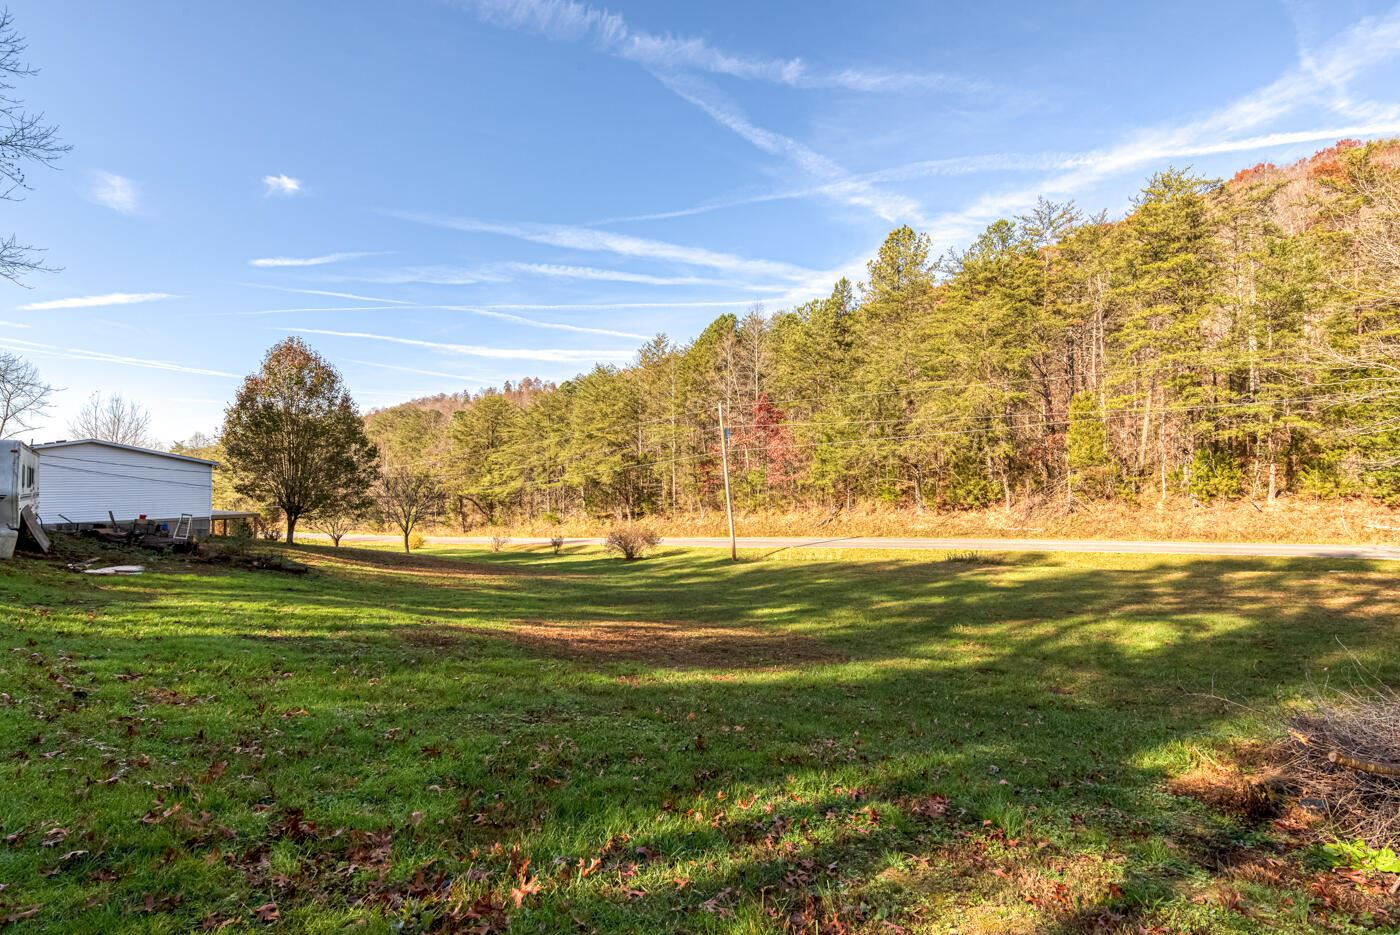 Photo of 2786 Caney Valley Road, Surgoinsville, TN 37873 (MLS # 9929181)